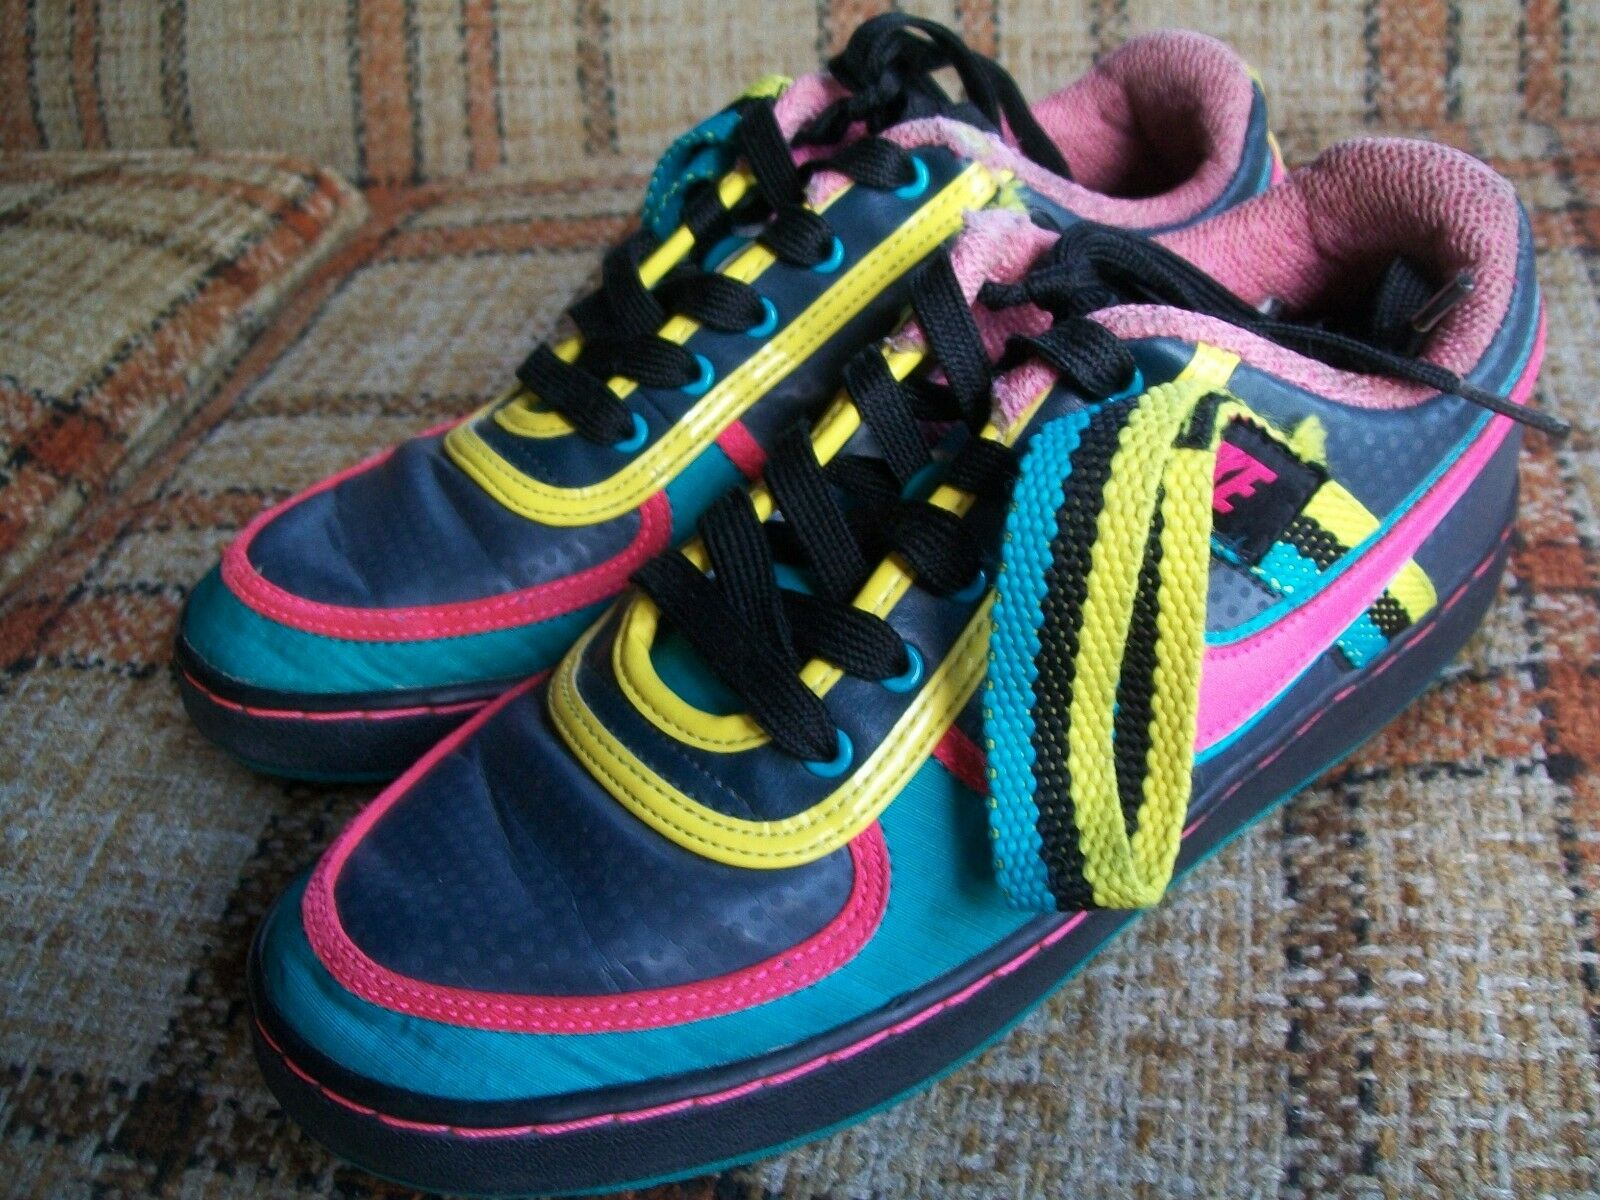 Nike Womens Size Size Size 9 () Multicolor Skate Shoes (2009) 366409-061 fea332